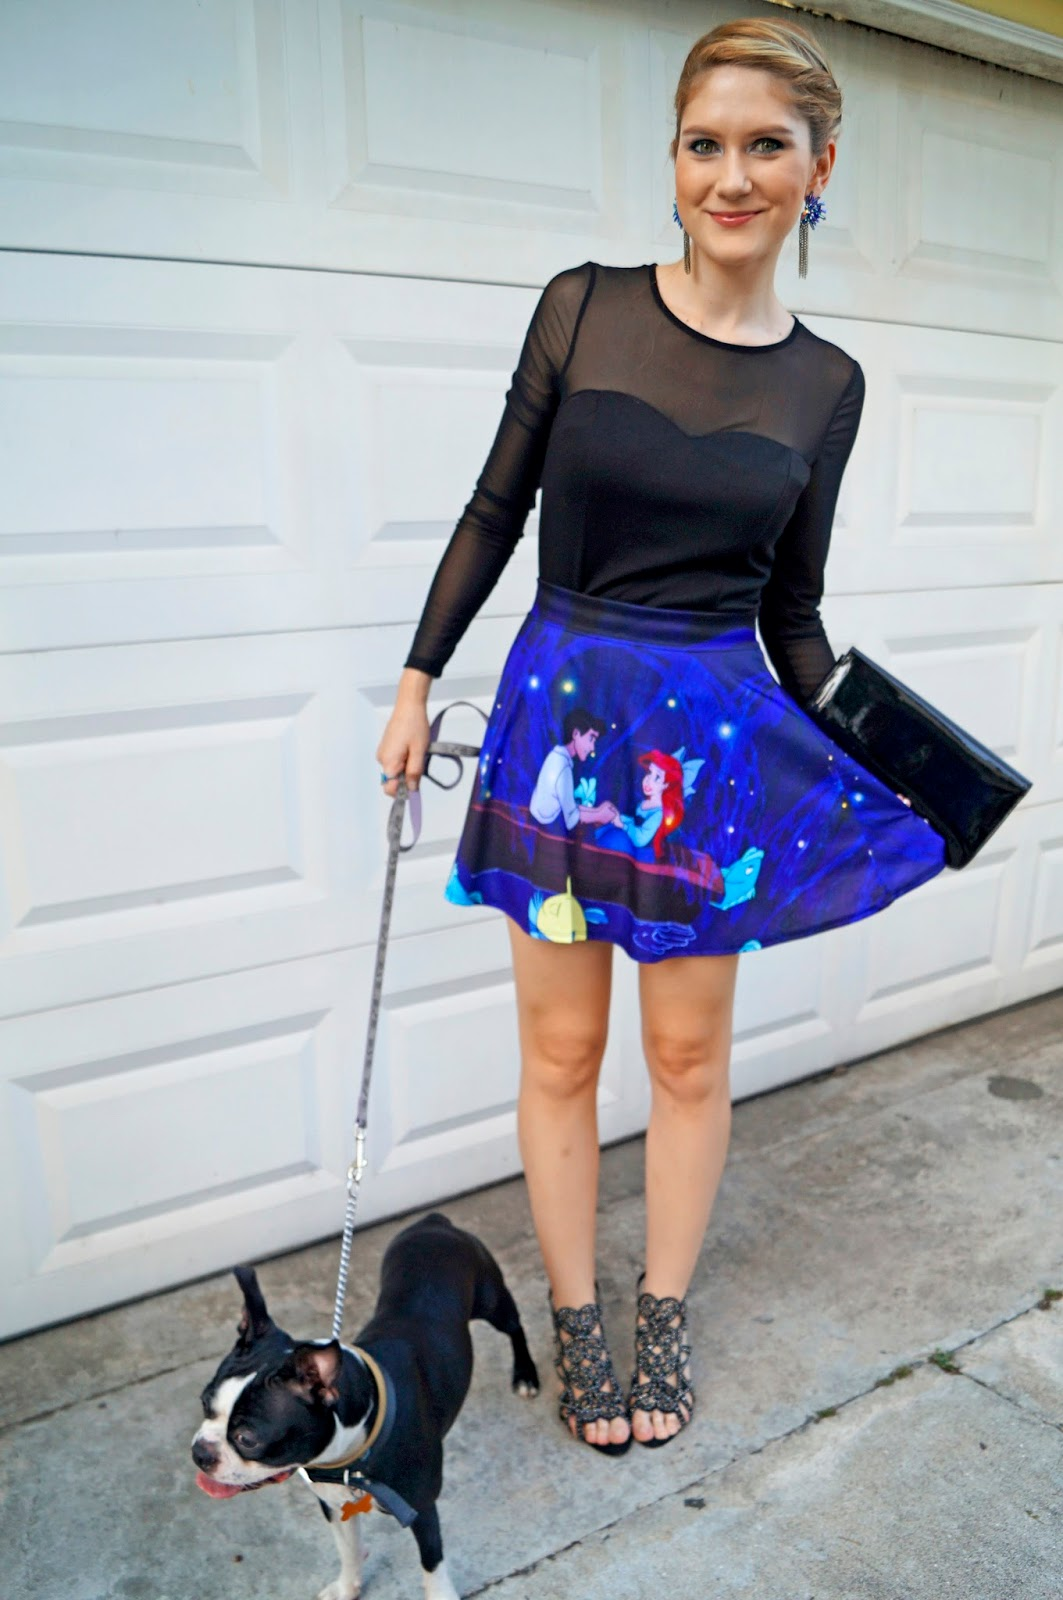 Adorable Disney Skirt from Hot Topic